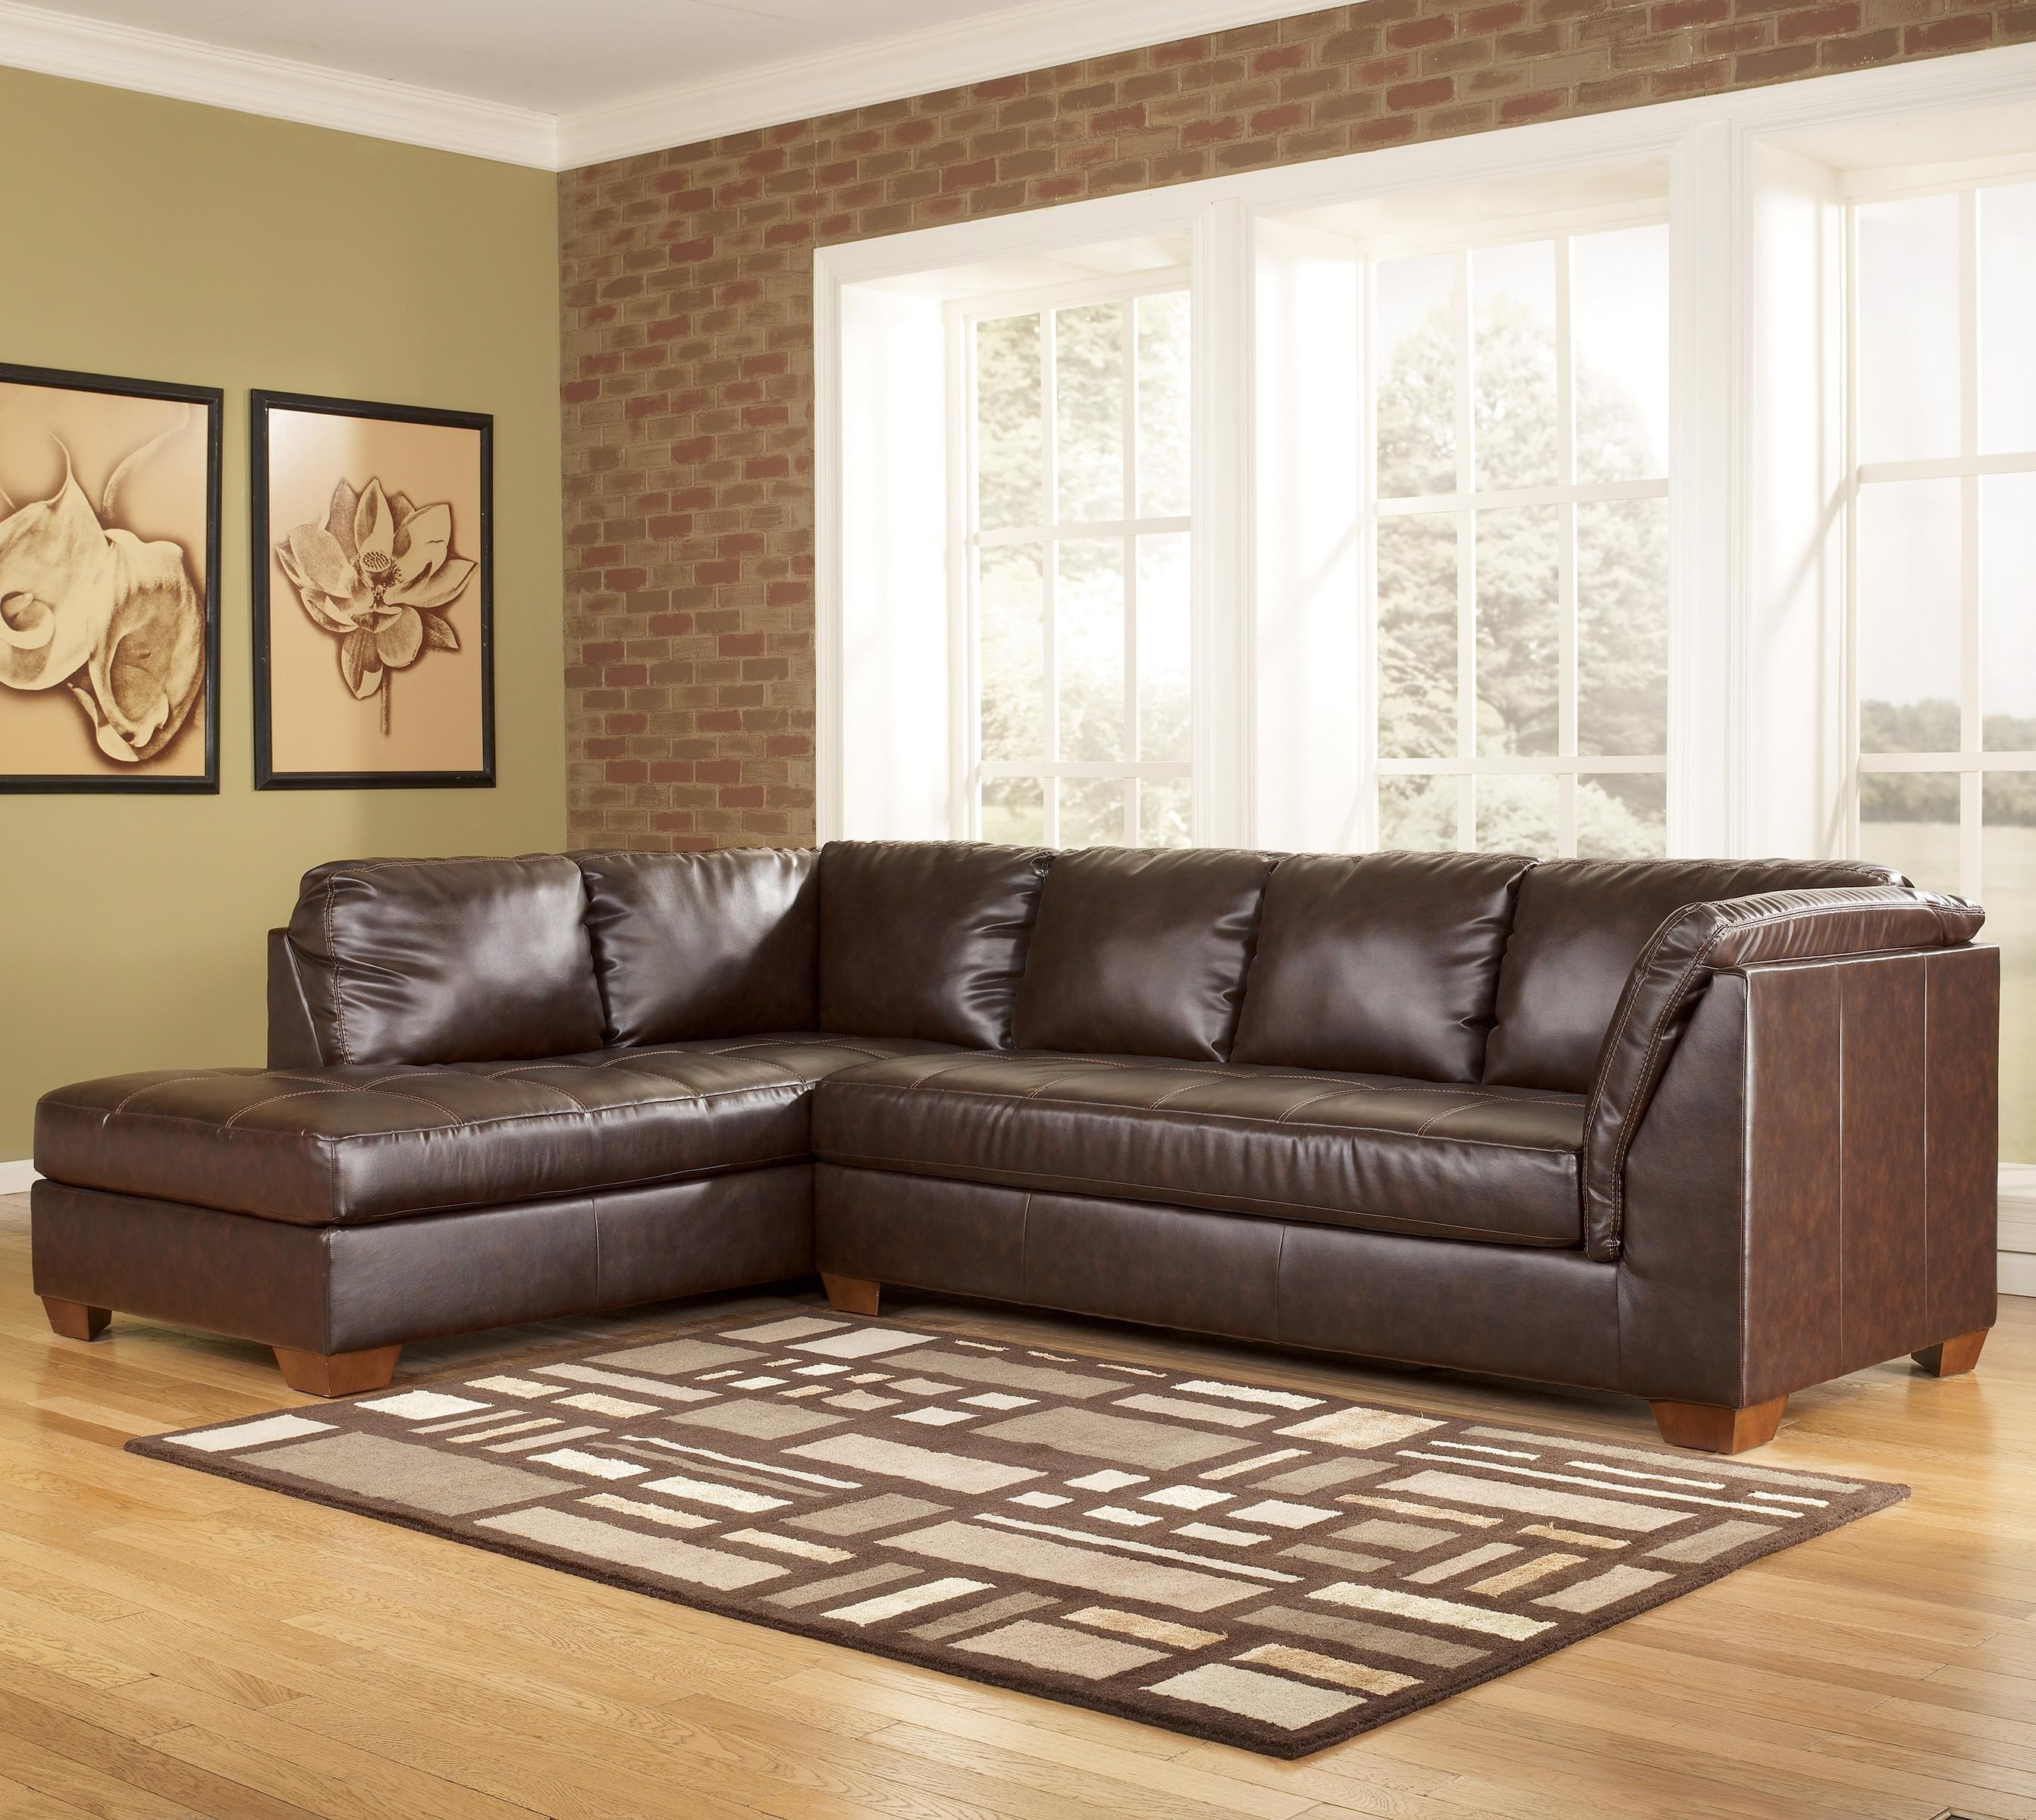 Signature Design by Ashley Furniture Fairplay DuraBlend® Contemporary Sectional Sofa in : capote durablend sectional - Sectionals, Sofas & Couches